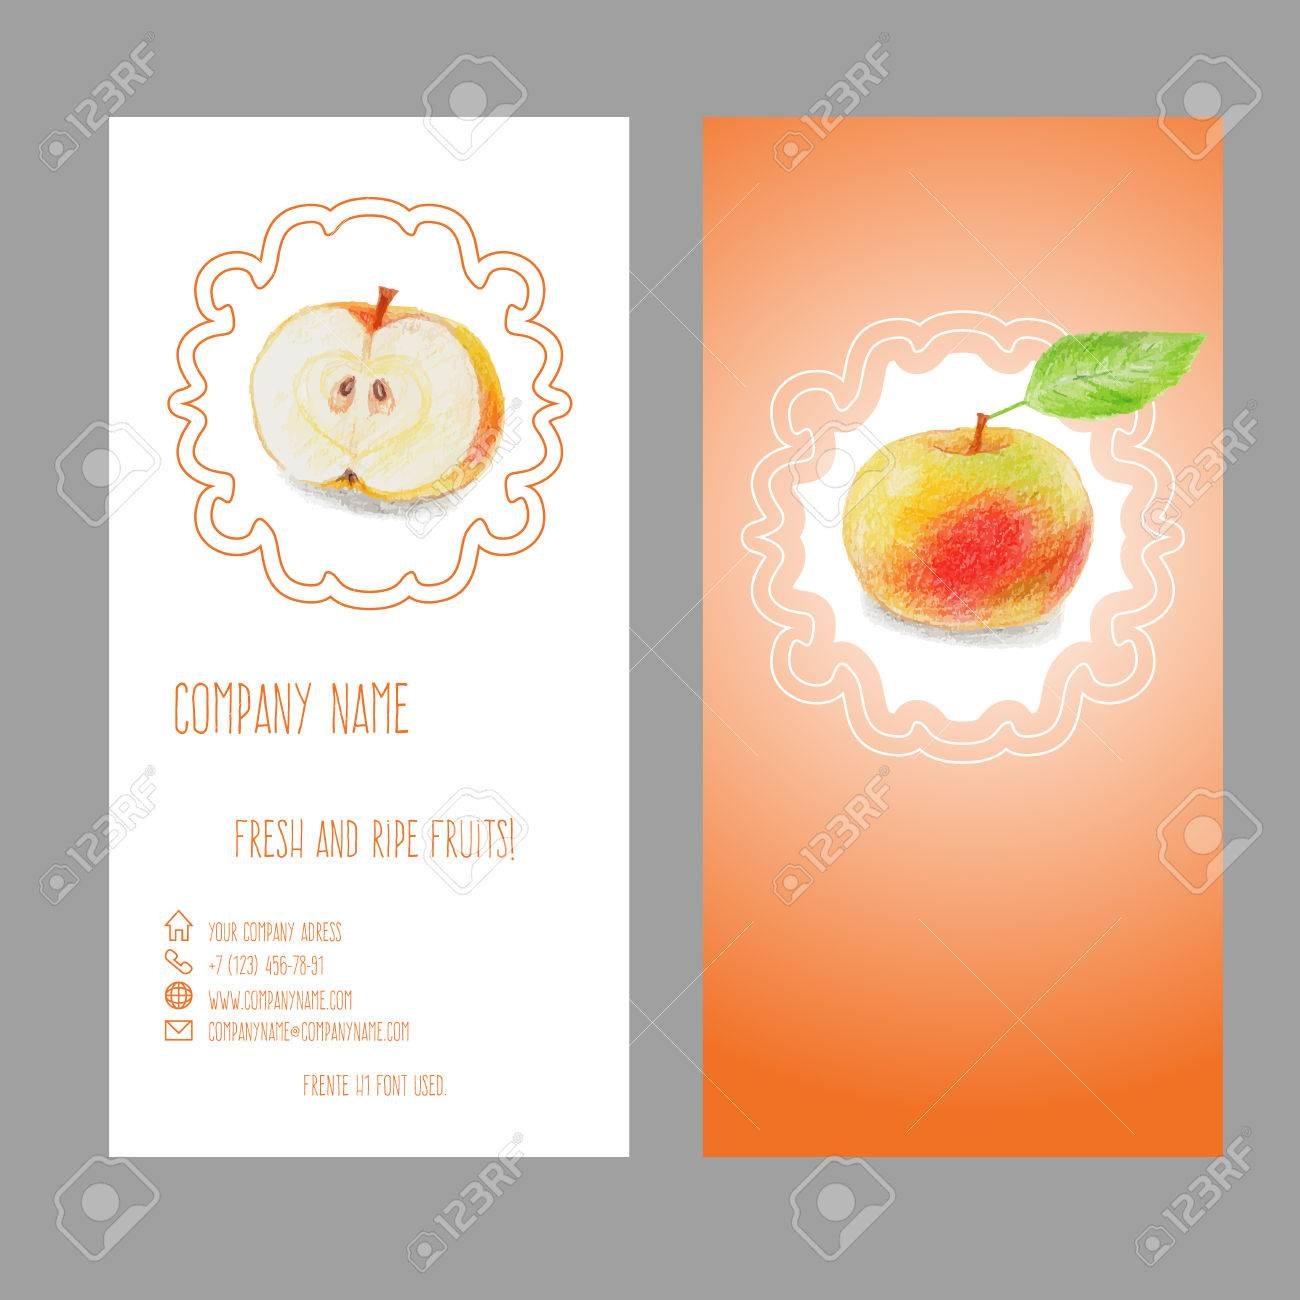 Business Card With Apple Drawn With Color Pencils. Elegant Fruit ...